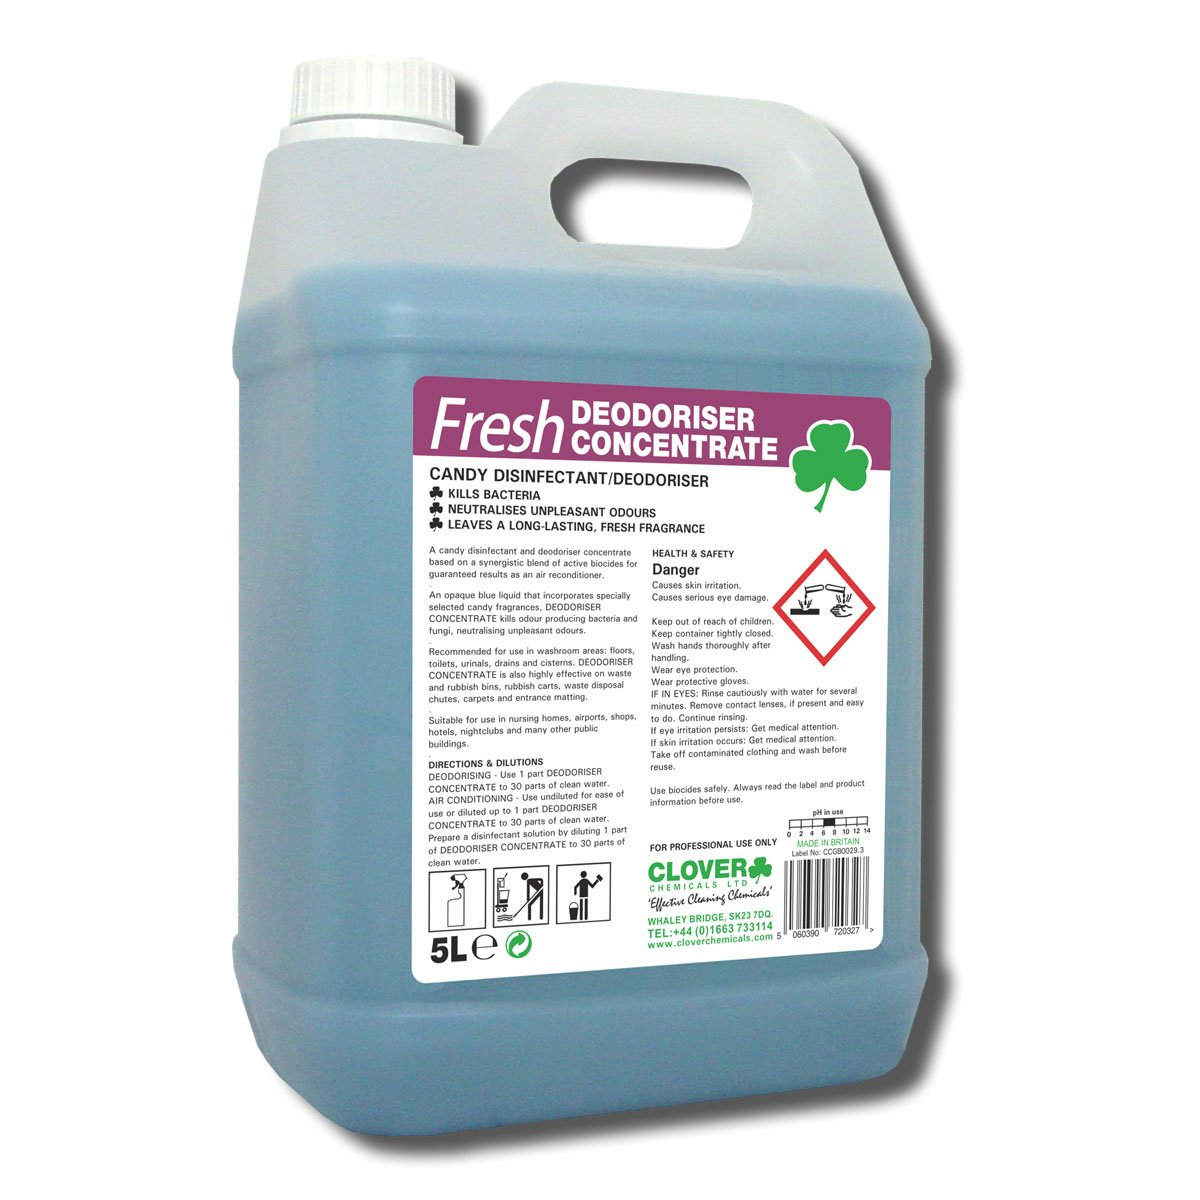 Clover 223 Fresh Candy Disinfectant & Deodoriser 5 Litre - Pack of 2 Clover Chemicals